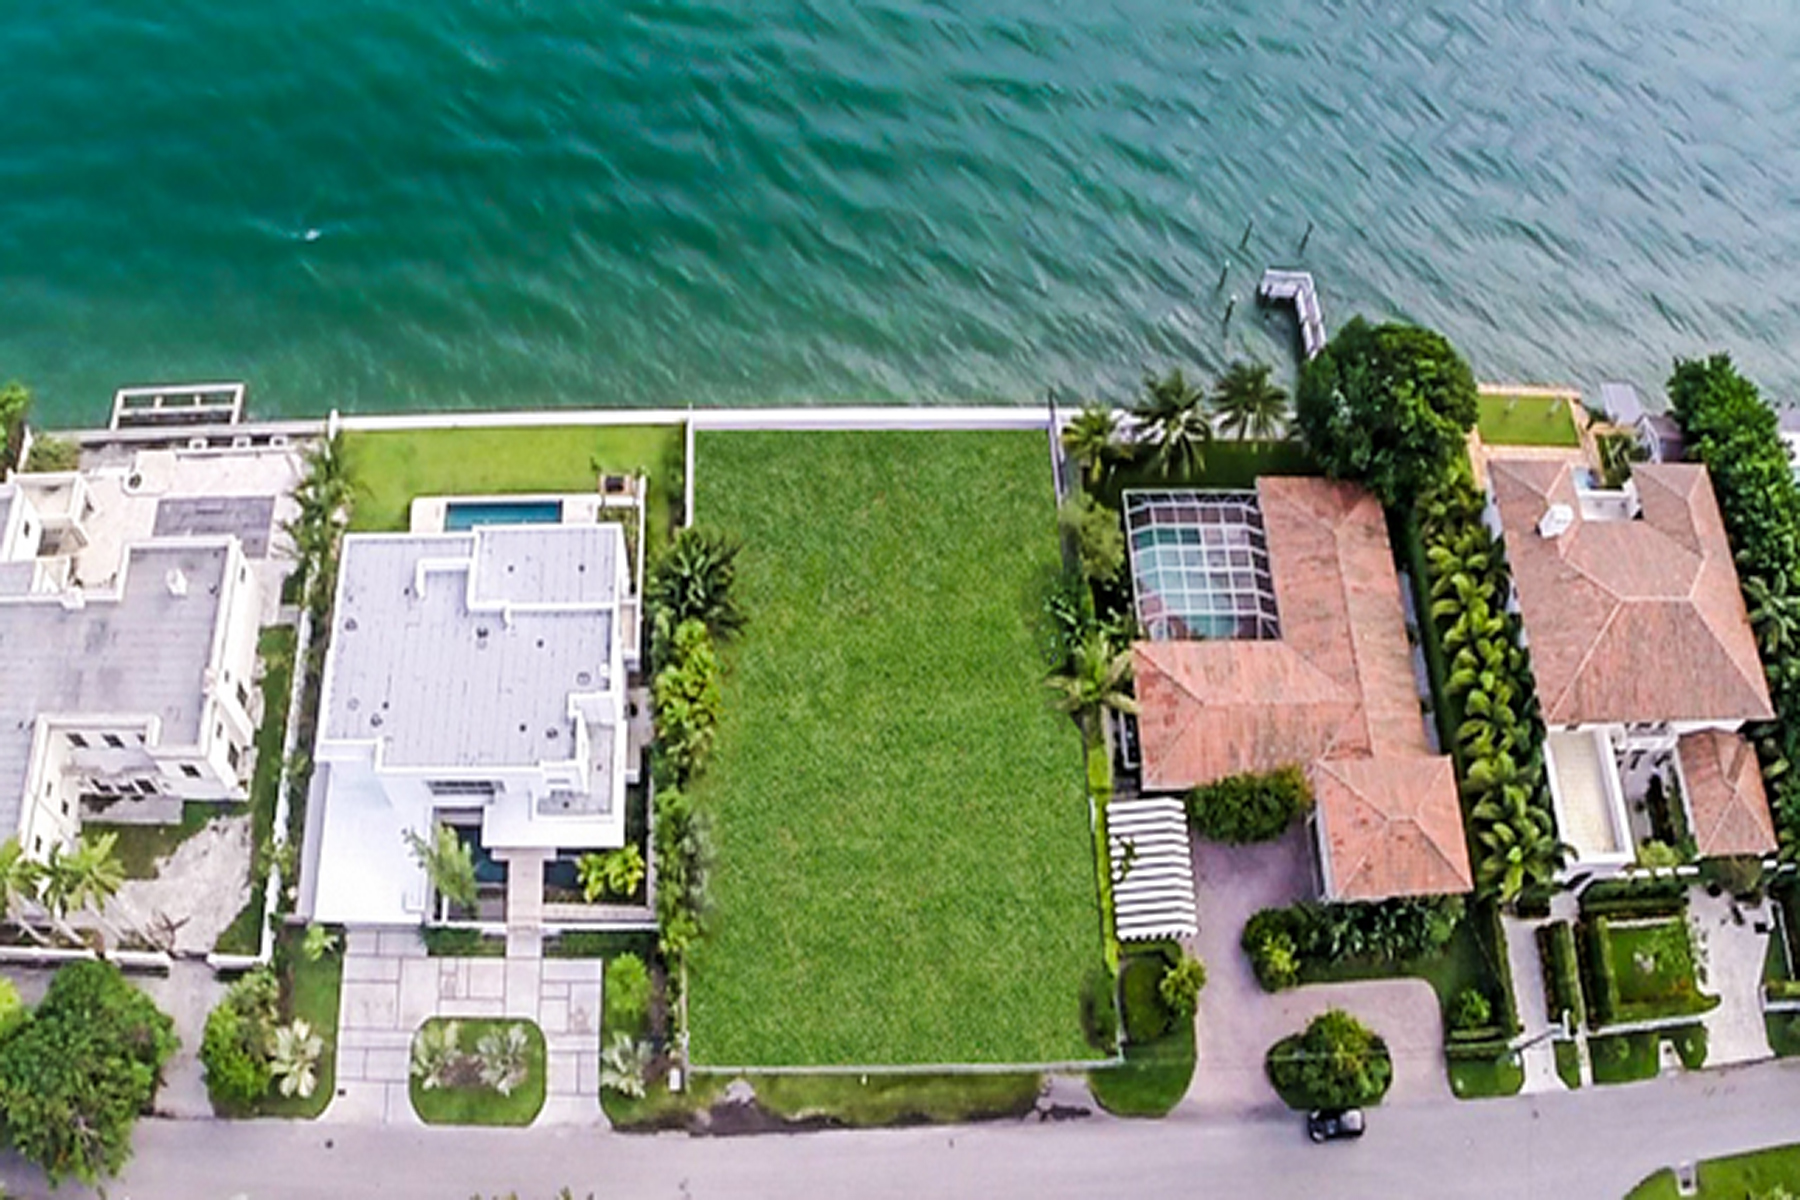 for Sale at 630 S Mashta Dr 630 SMashta Dr Key Biscayne, Florida 33149 United States